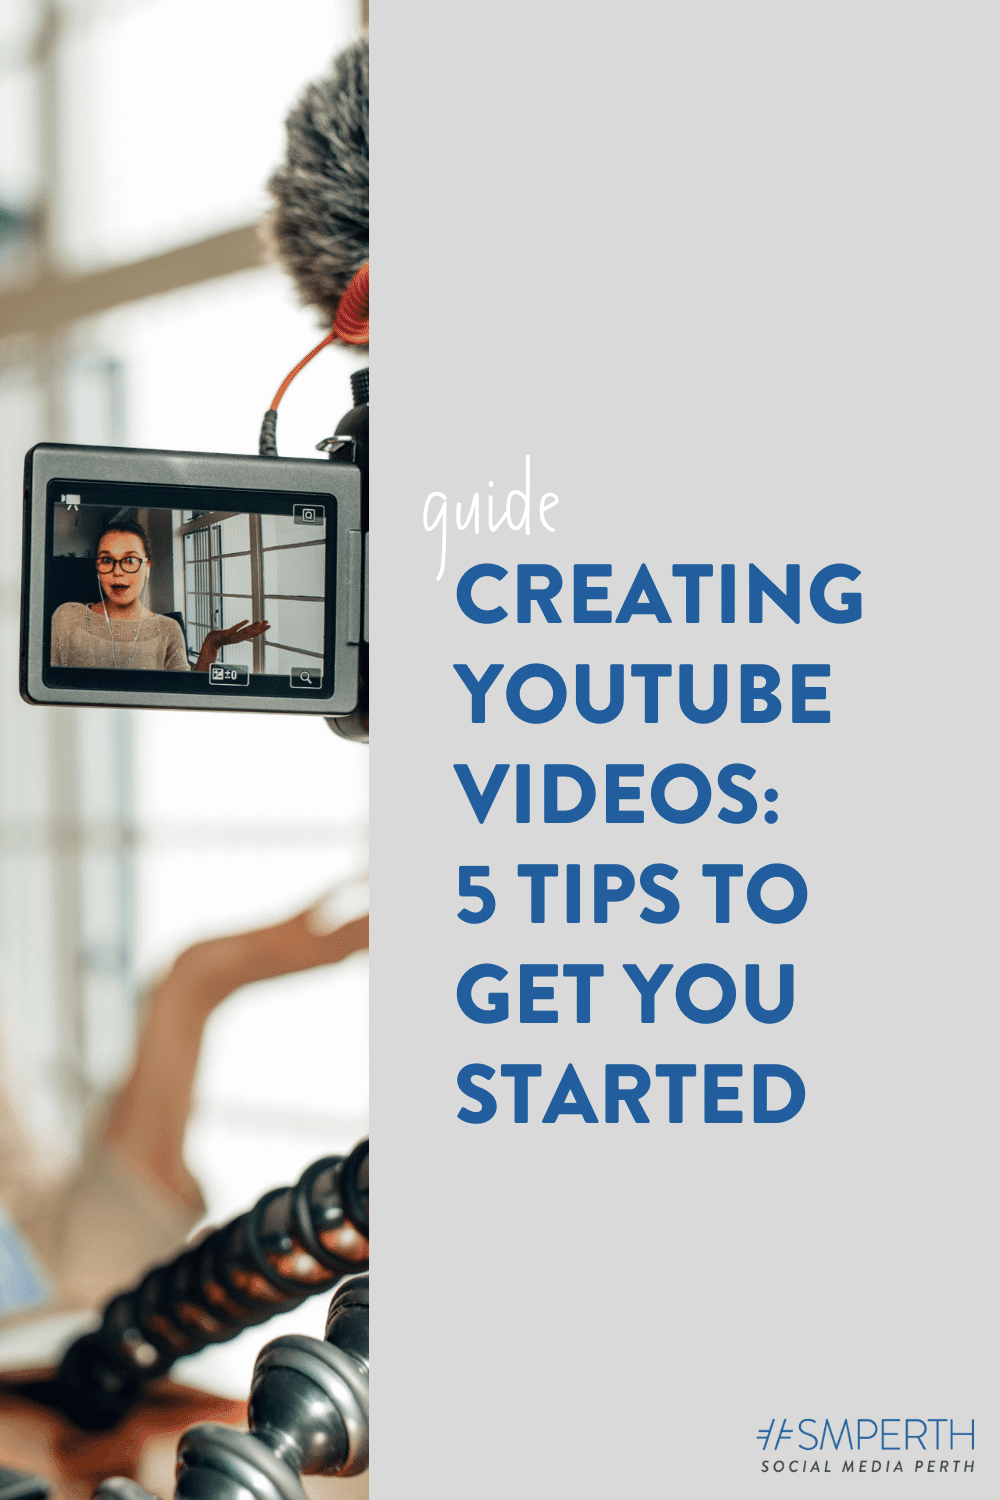 Creating YouTube Videos: 5 Tips to Get You Started